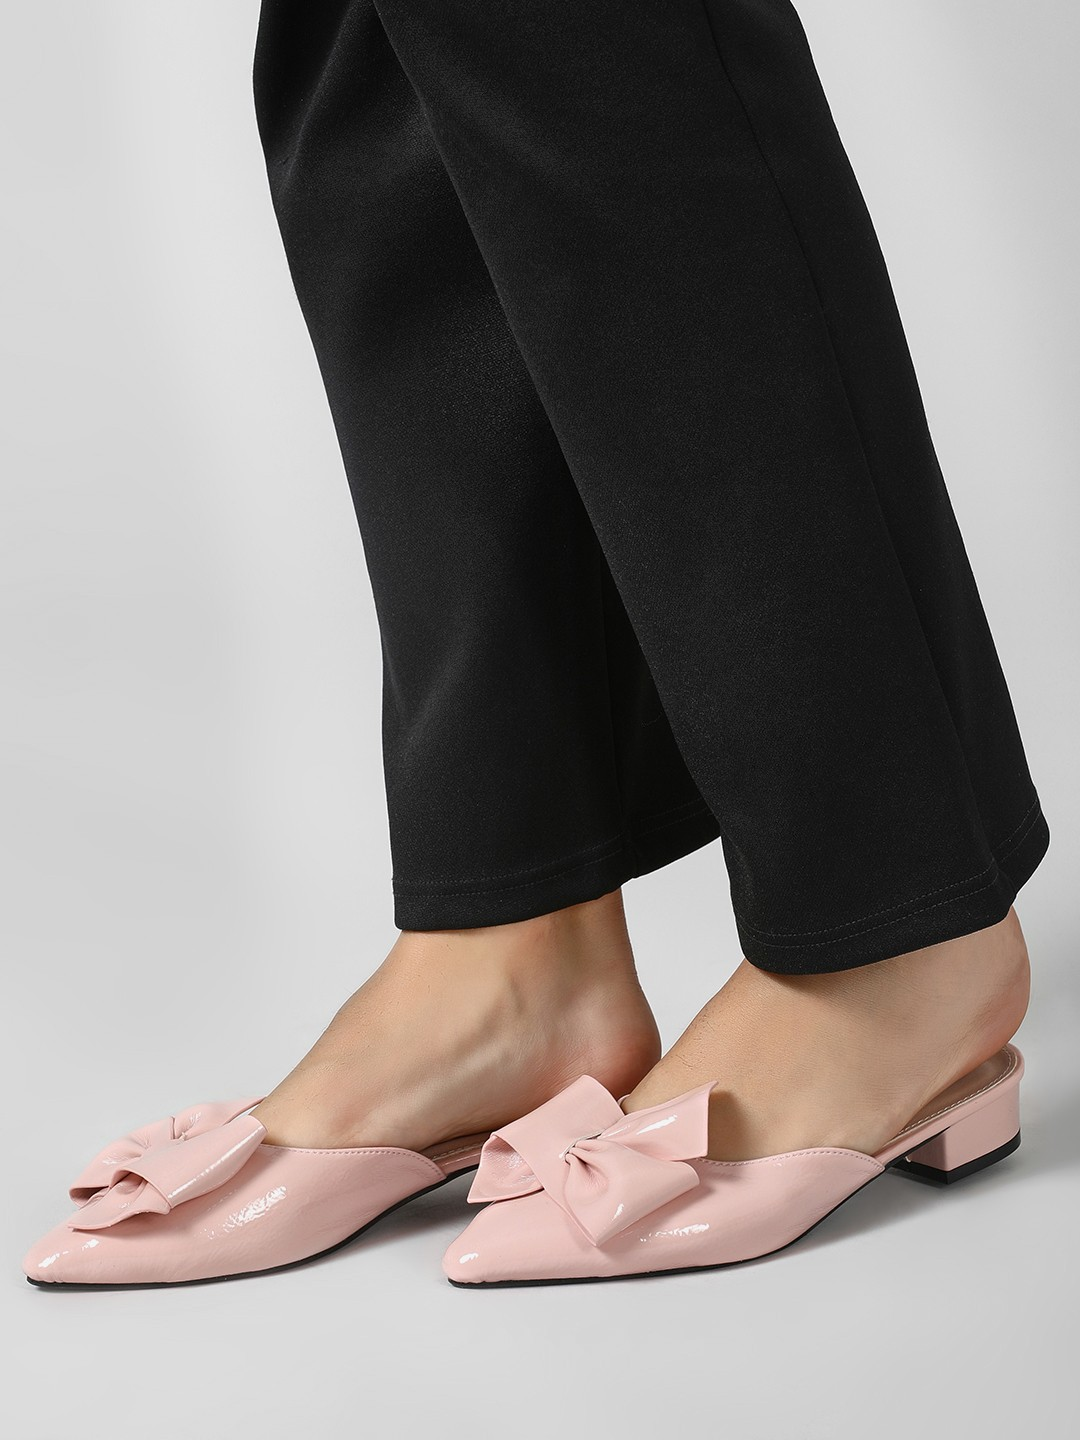 My Foot Couture Blush pink Heeled Mules With Bow Detail 1